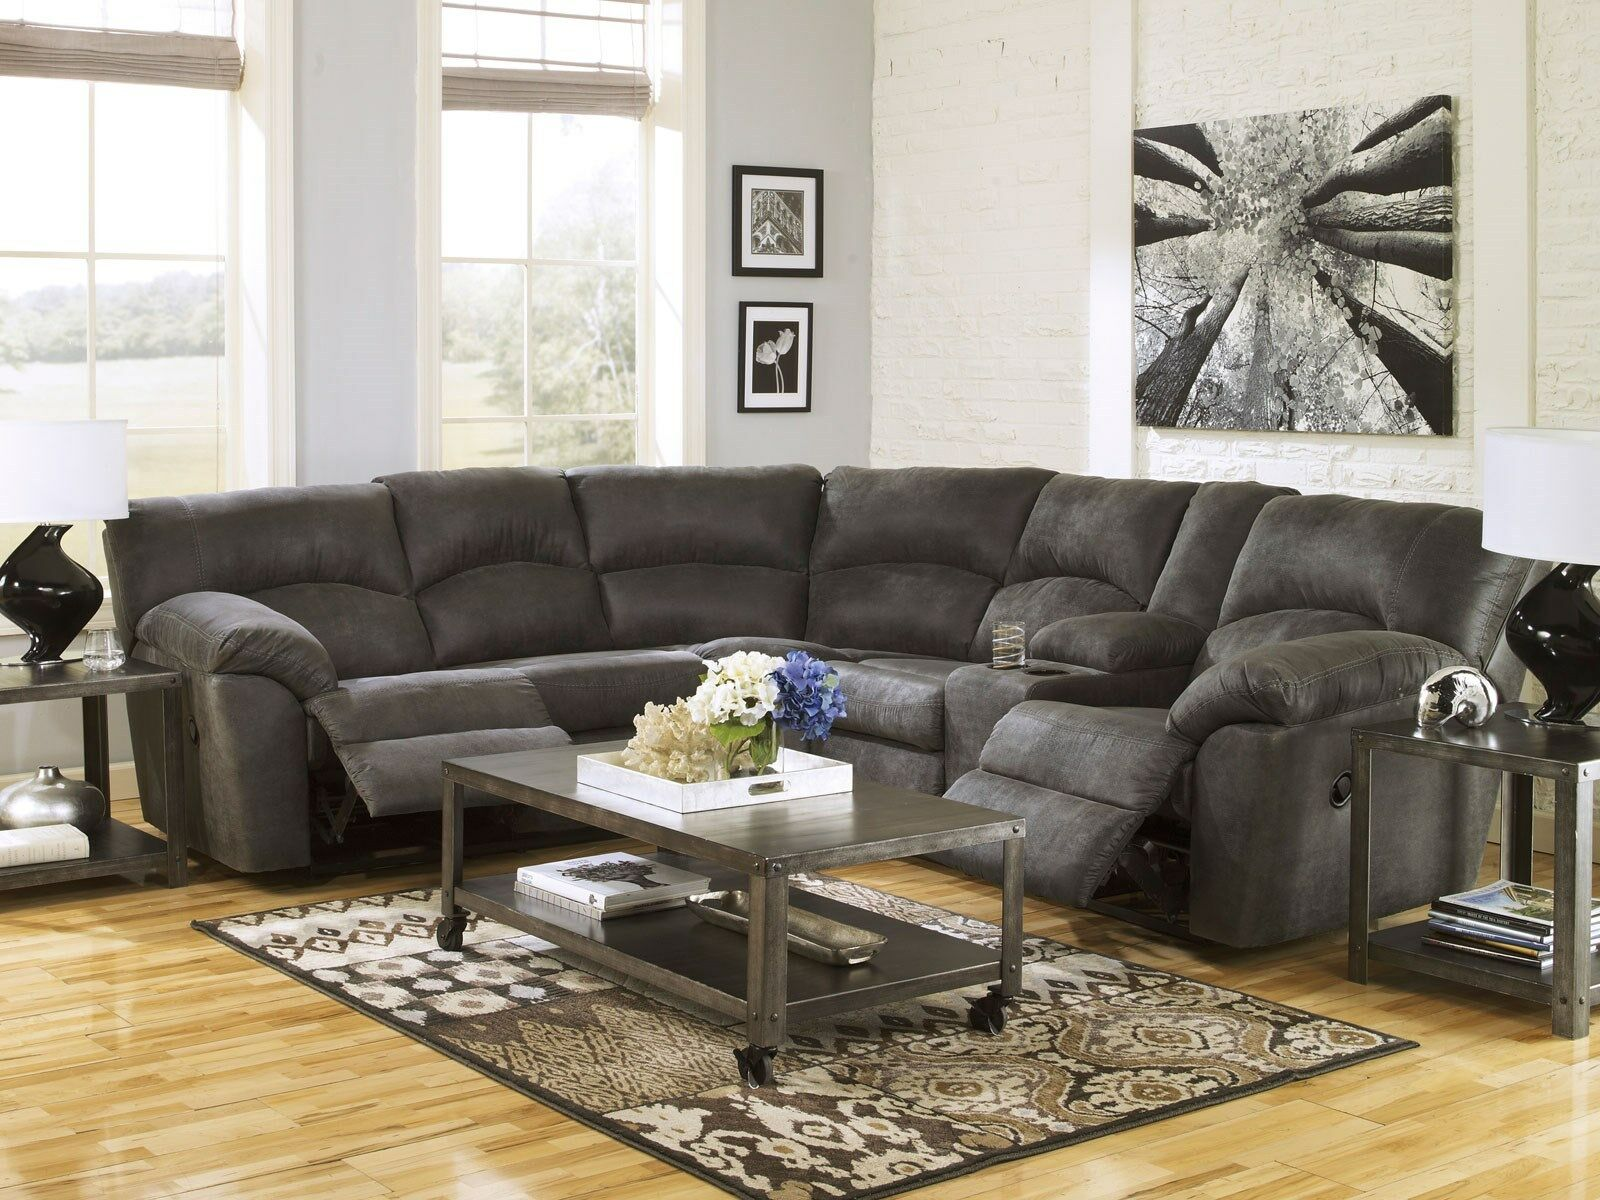 New Modern Sectional Living Room Couch Set Gray Microfiber Reclining Sofa If2i